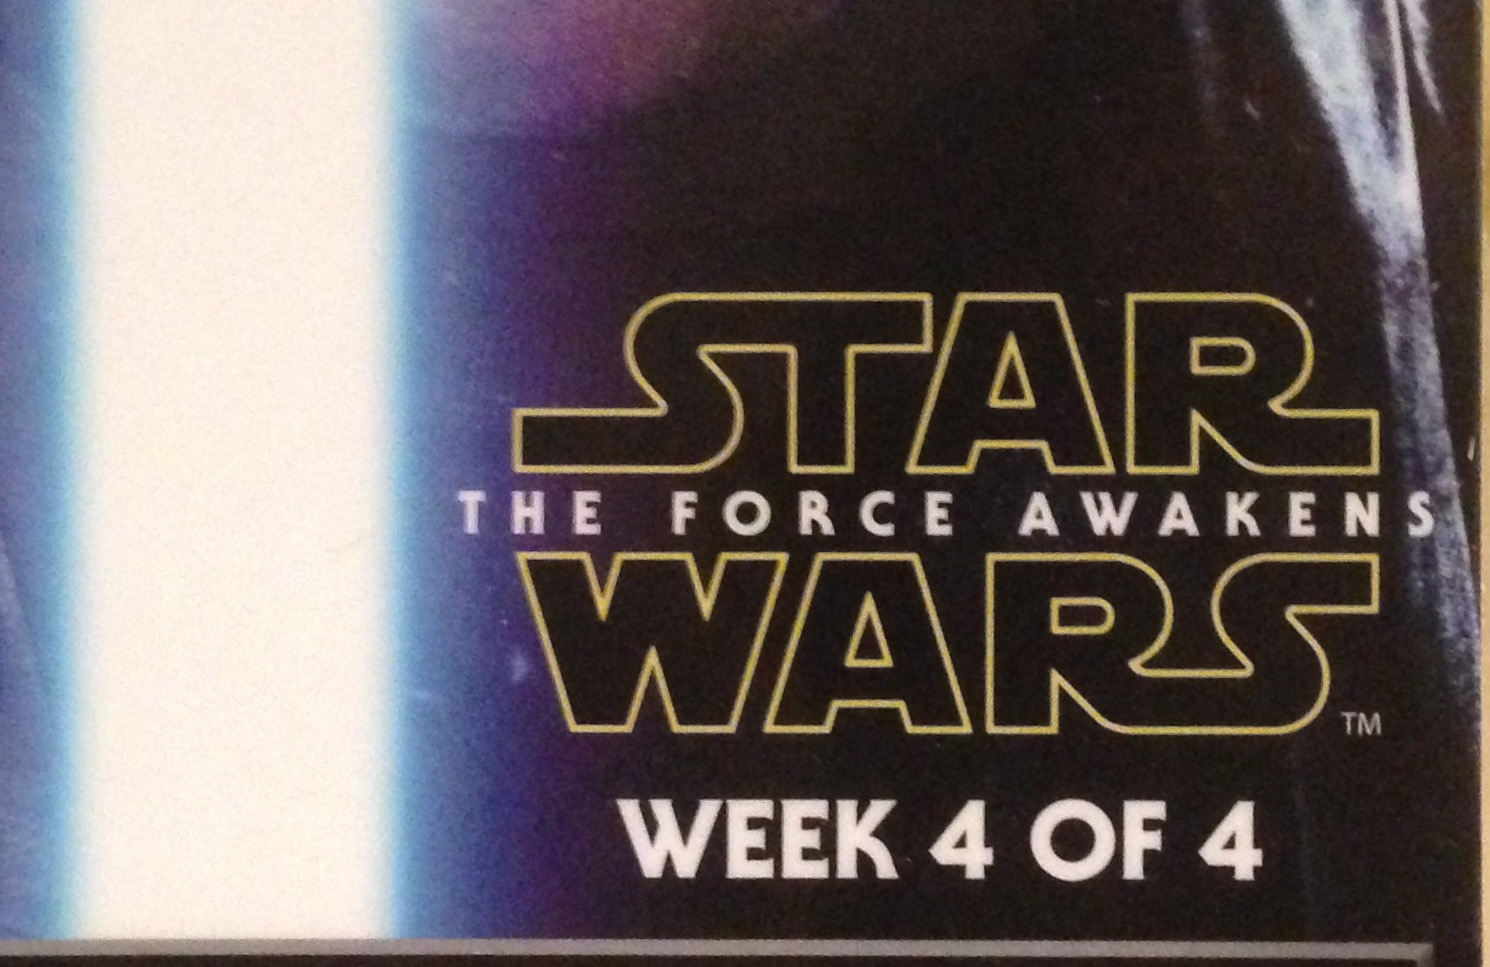 The Force re-awakens